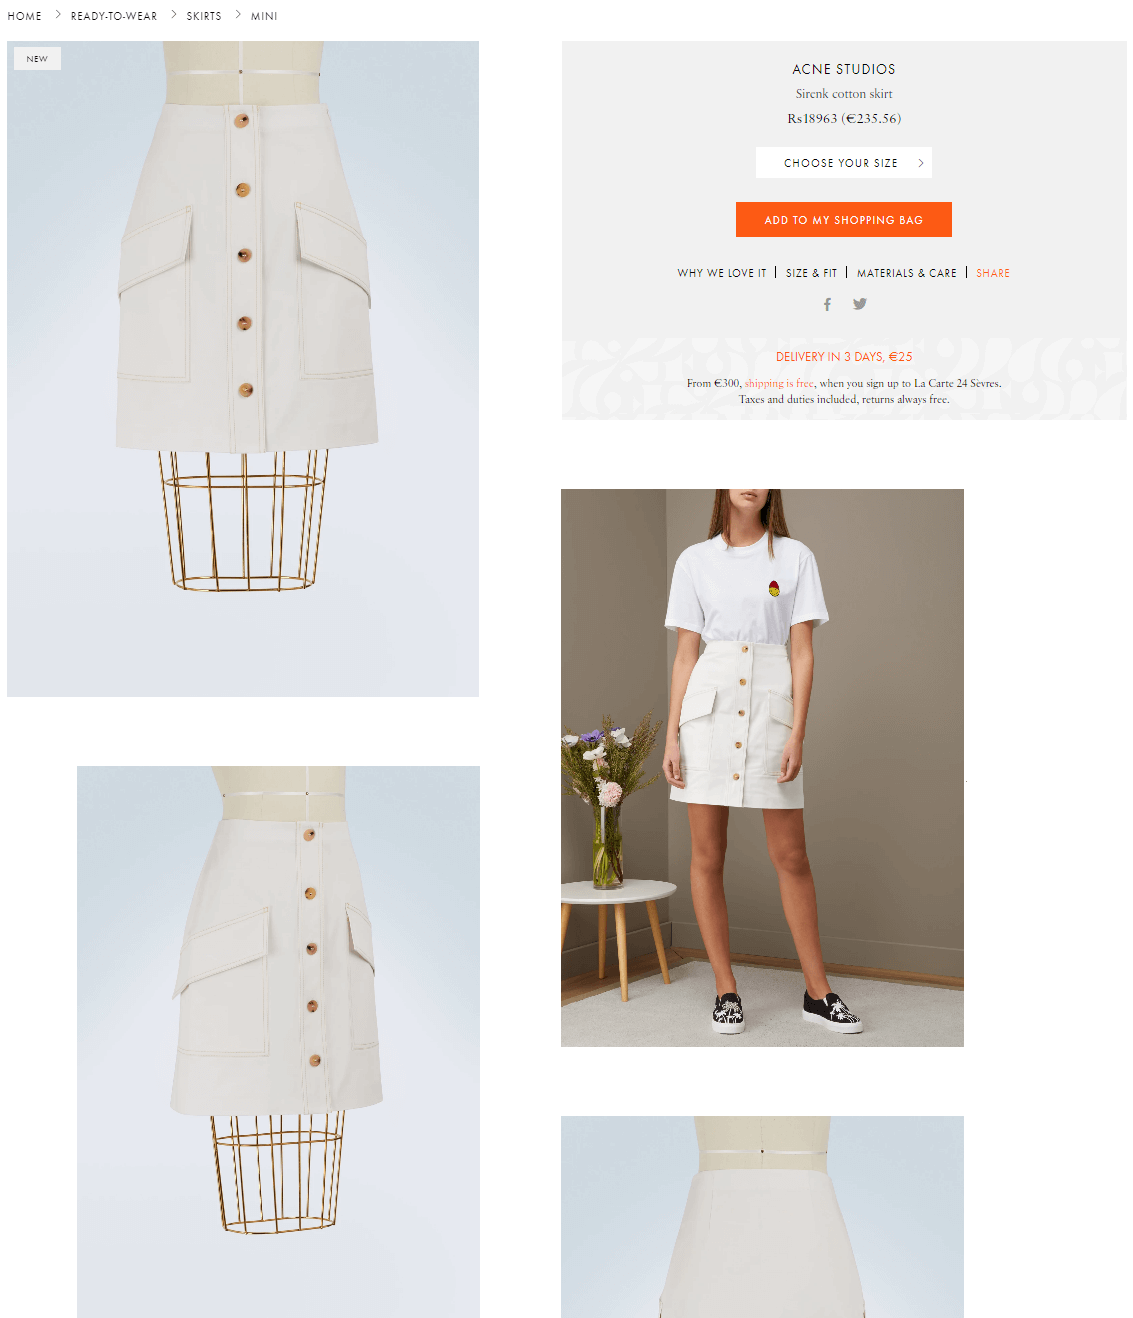 website with better product images and visuals for user engagement